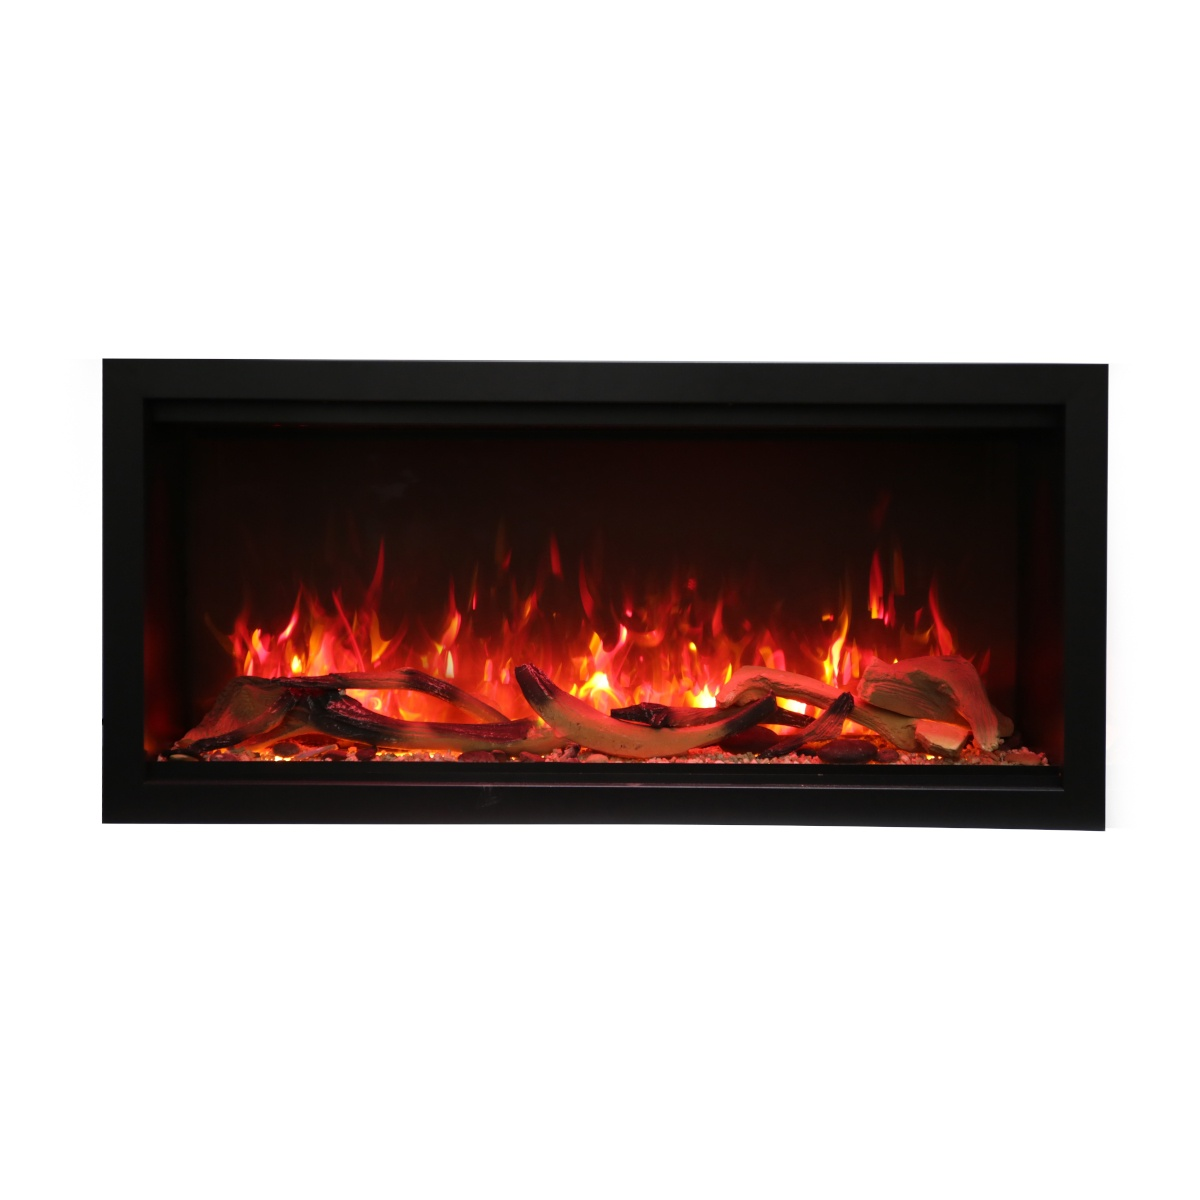 amantii SYM-42-XT extra tall contemporary electric fireplace insert with logs and red flames